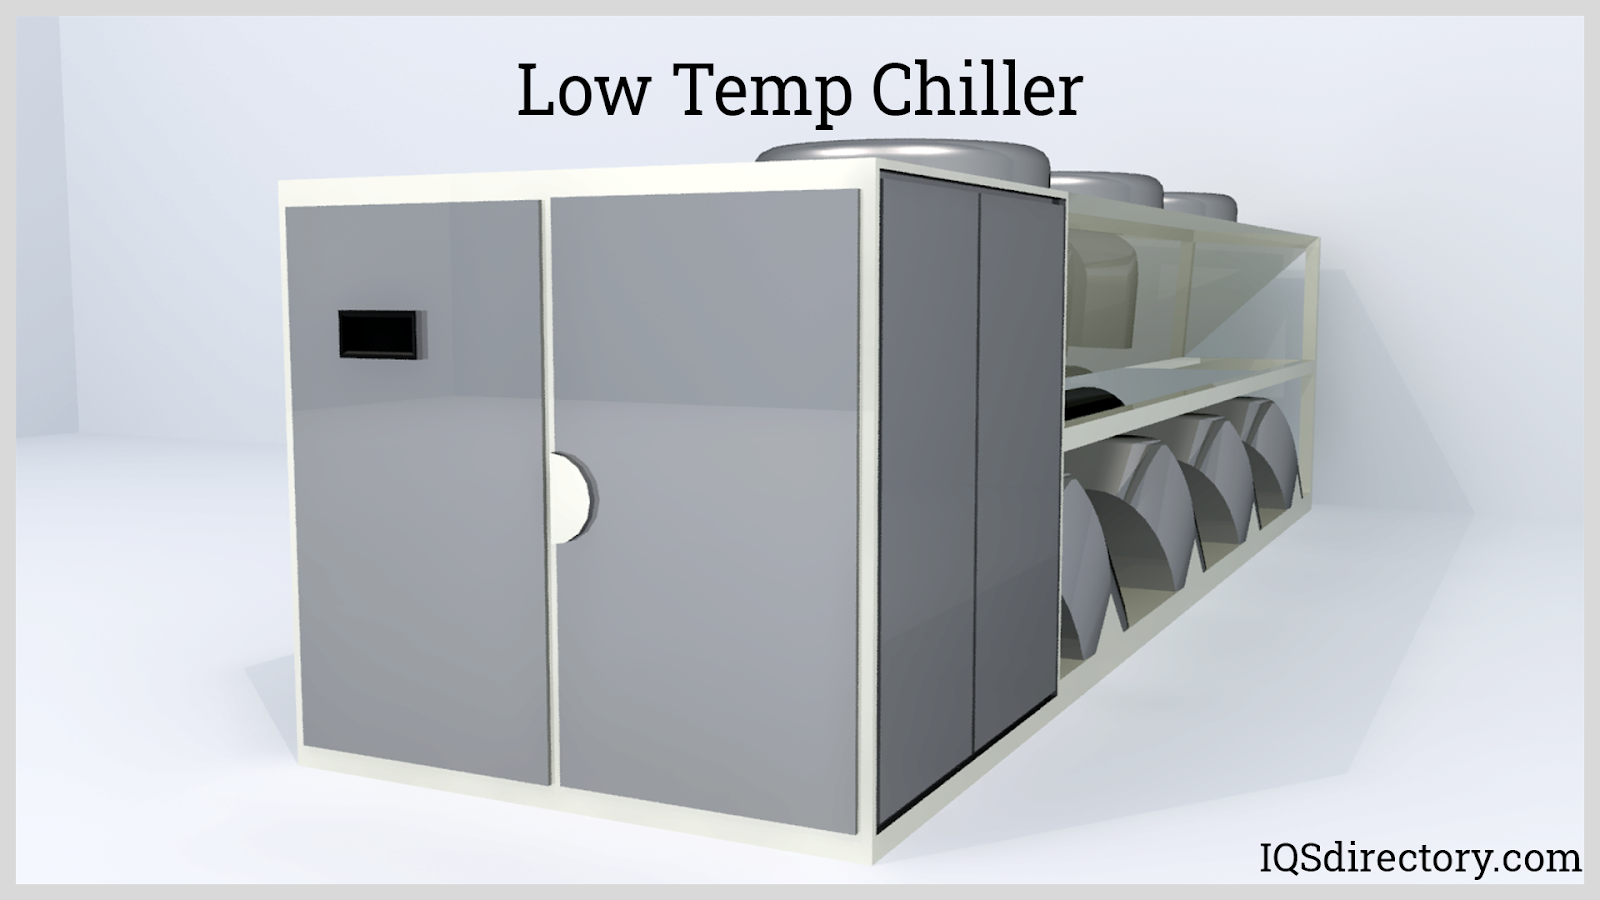 Low Temp Chiller